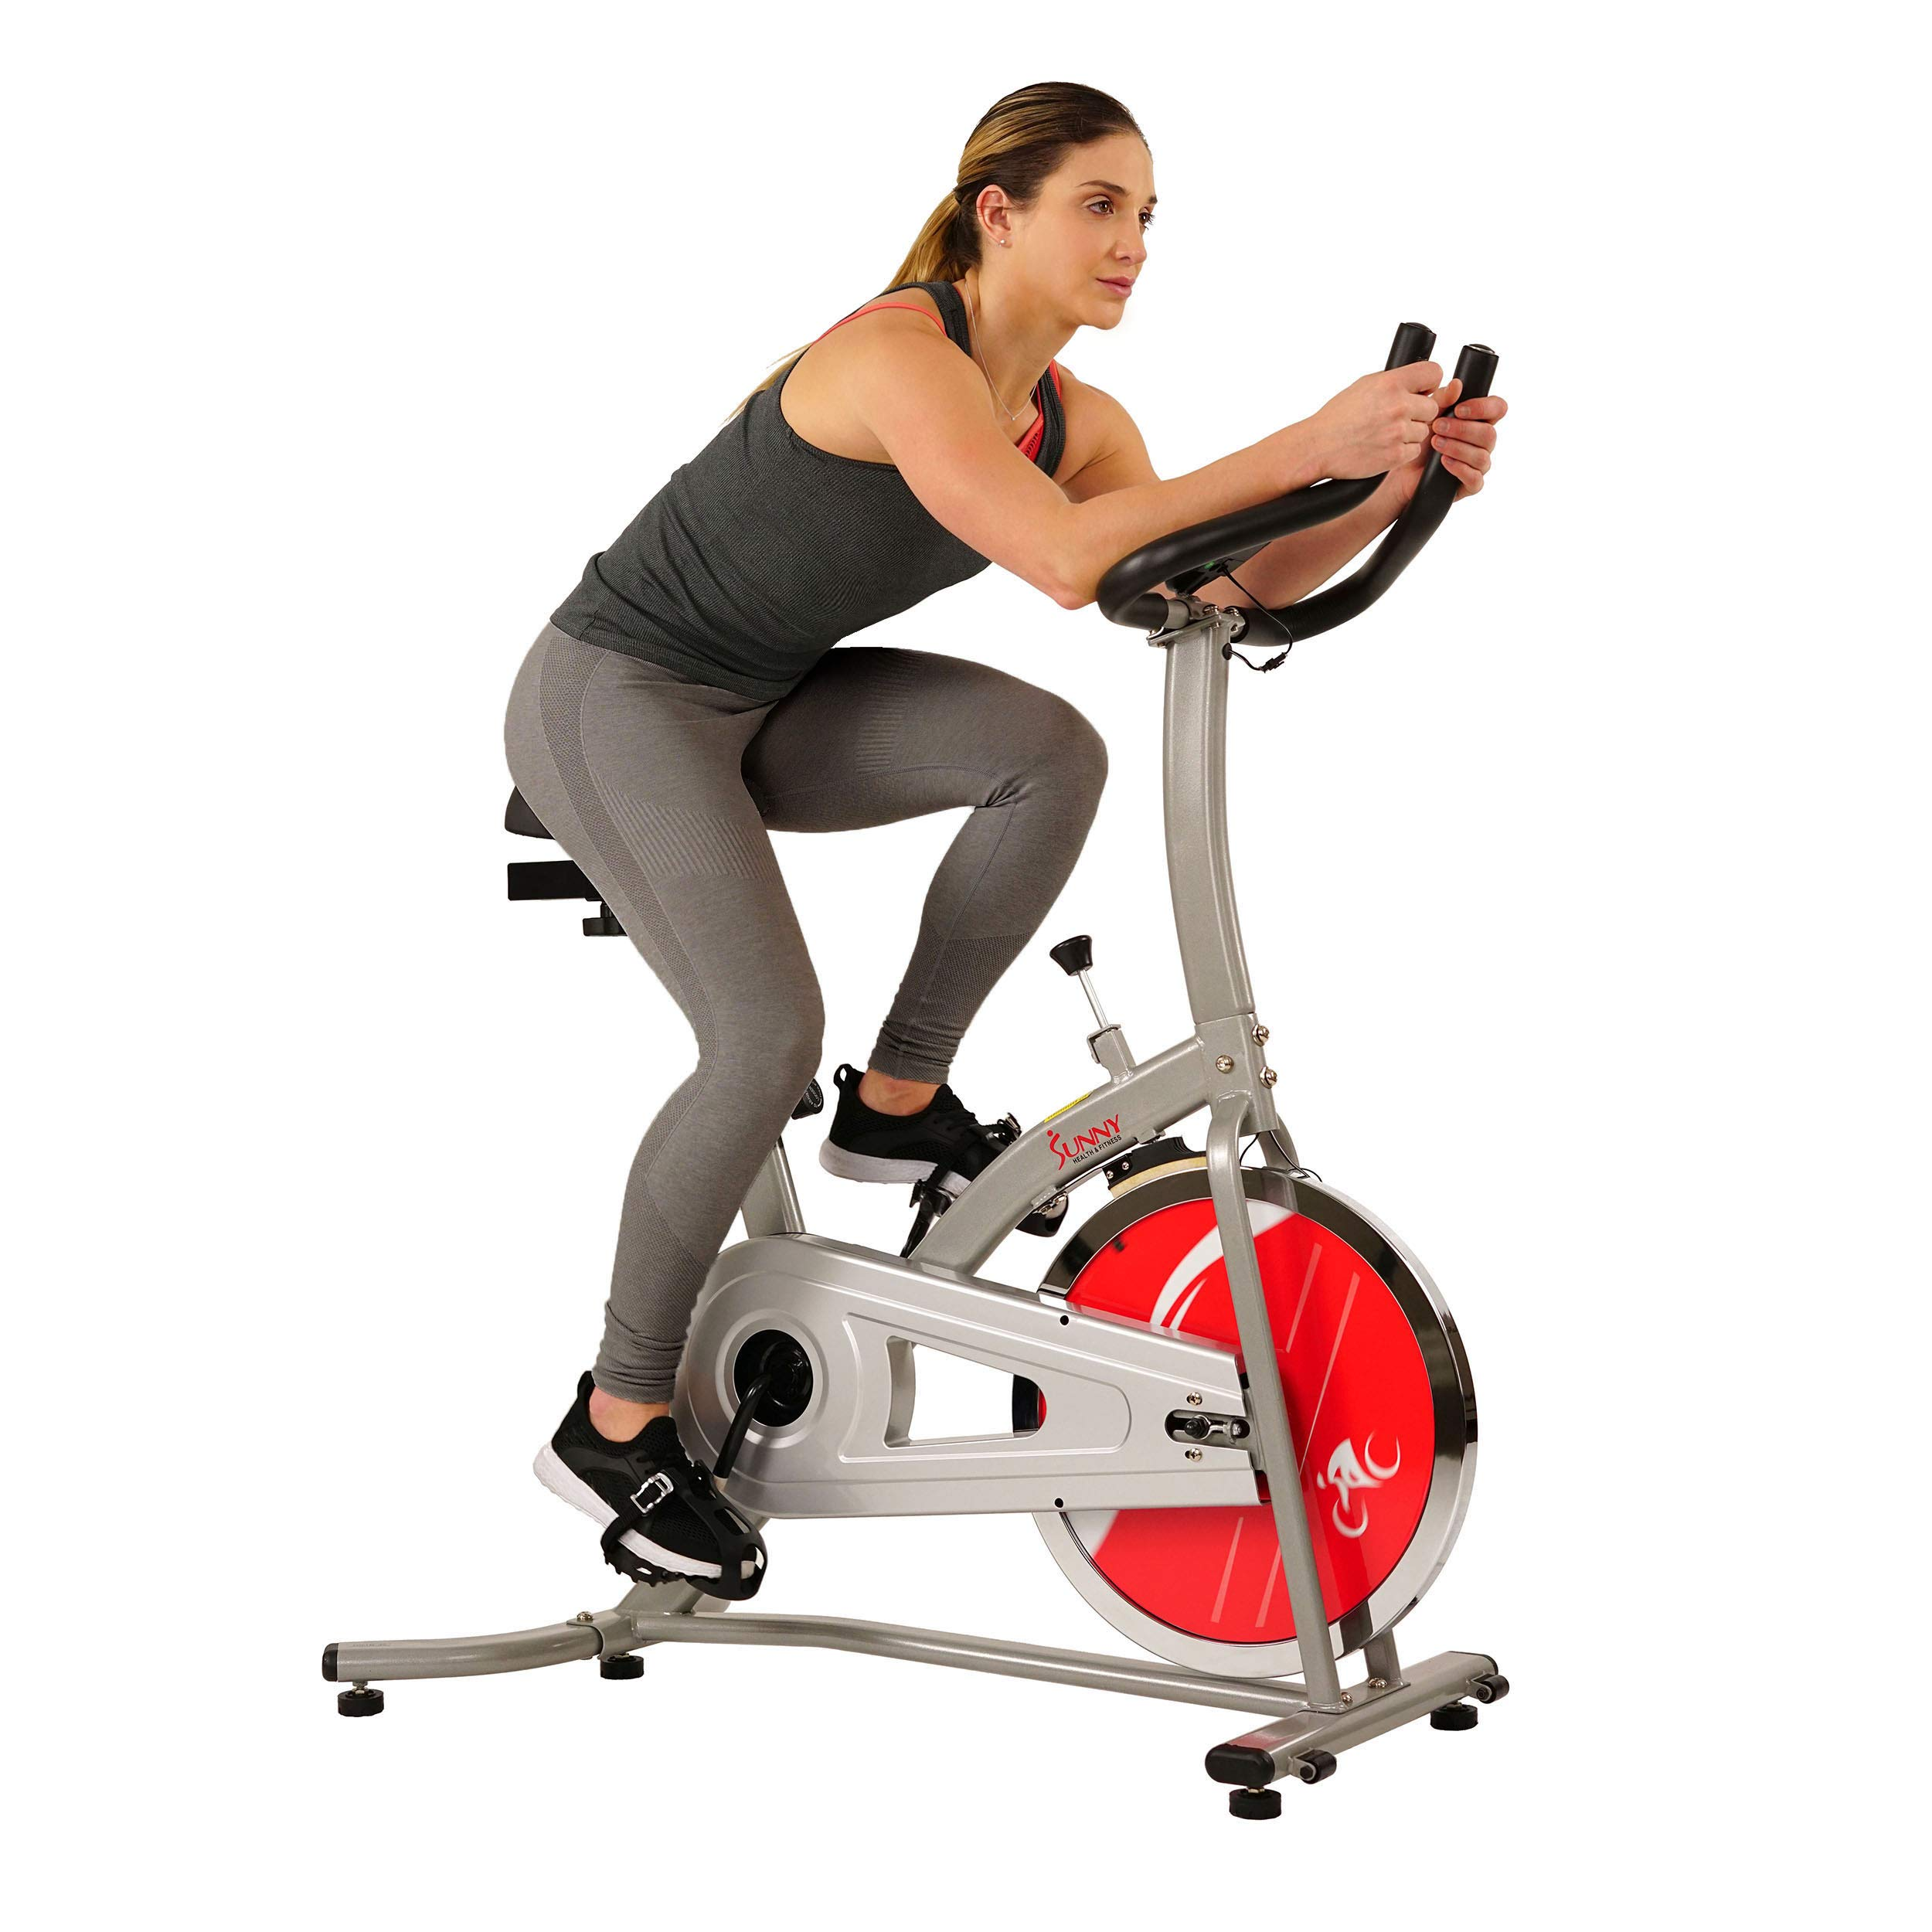 Sunny Health & Fitness Indoor Cycling Exercise Stationary Bike with Monitor and Flywheel Bike - SF-B1203 by Sunny Health & Fitness (Image #1)